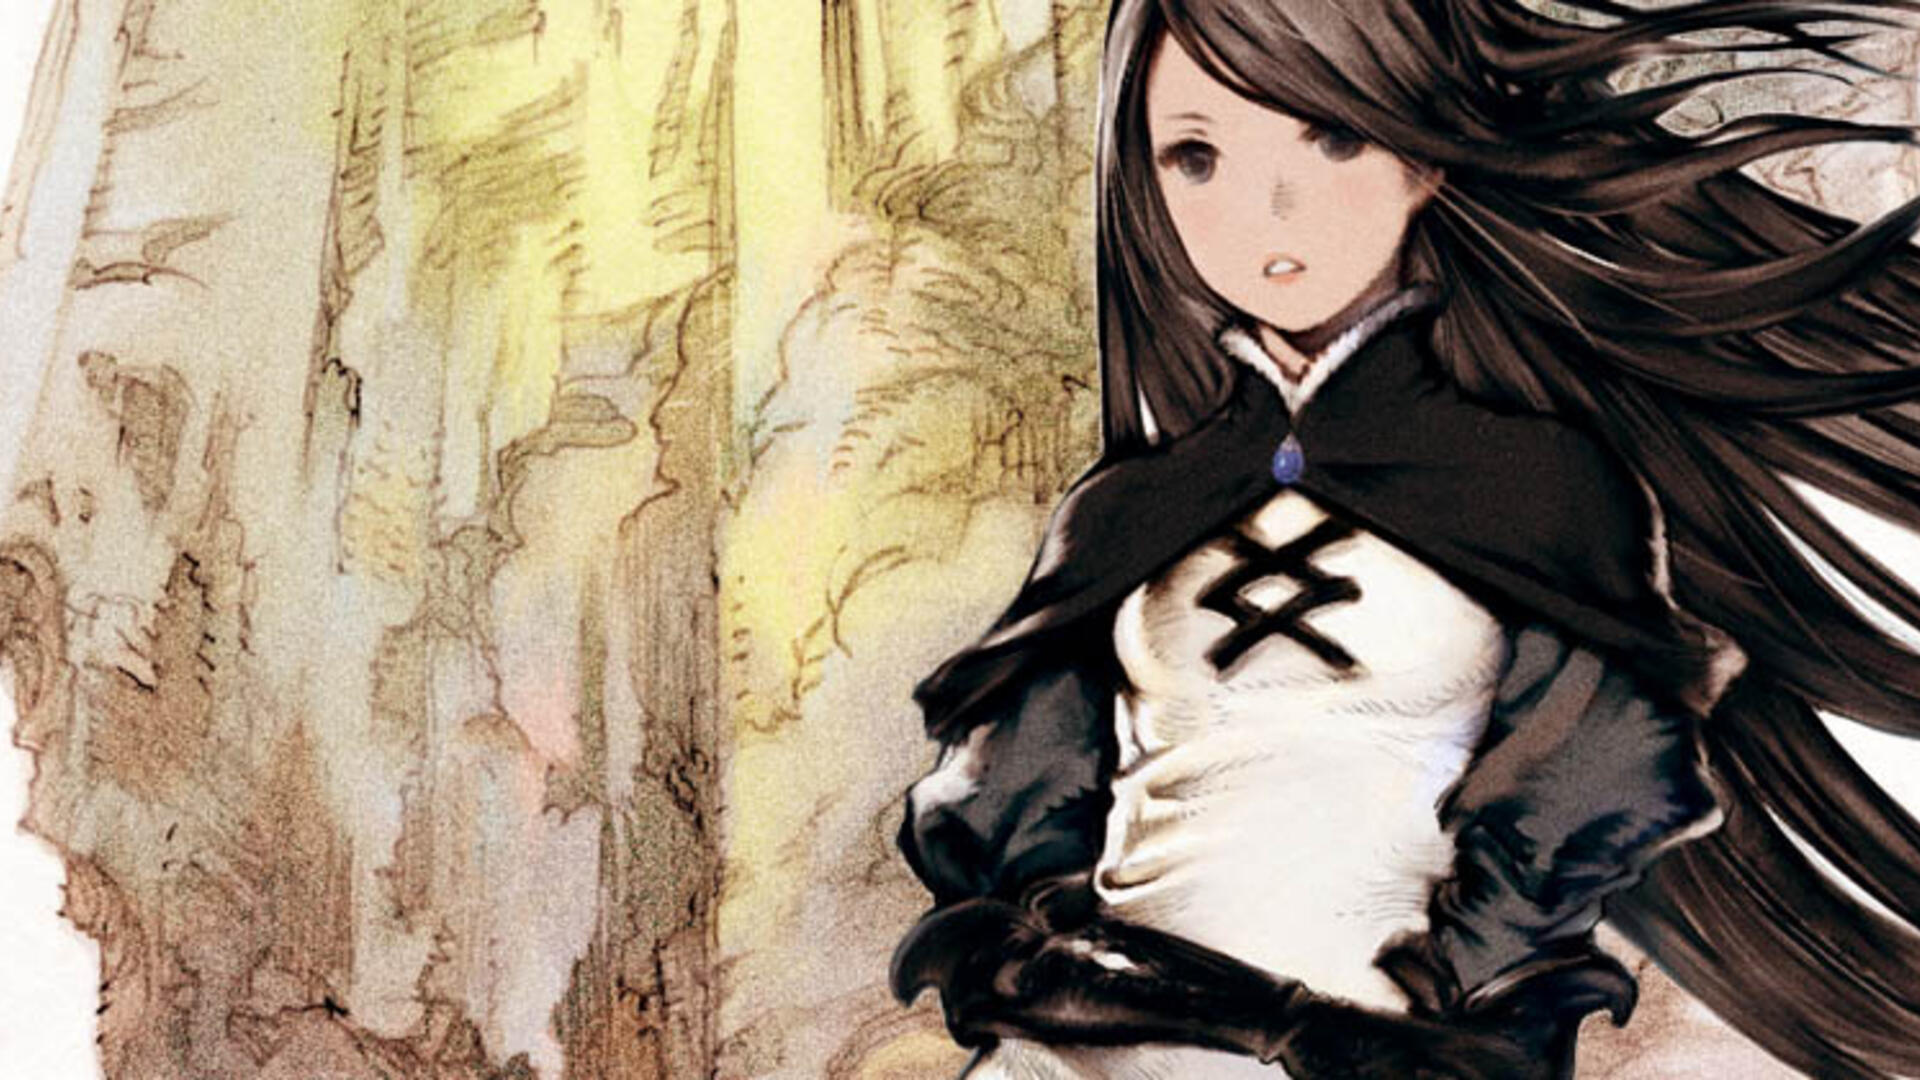 What Bravely Default Gets Right